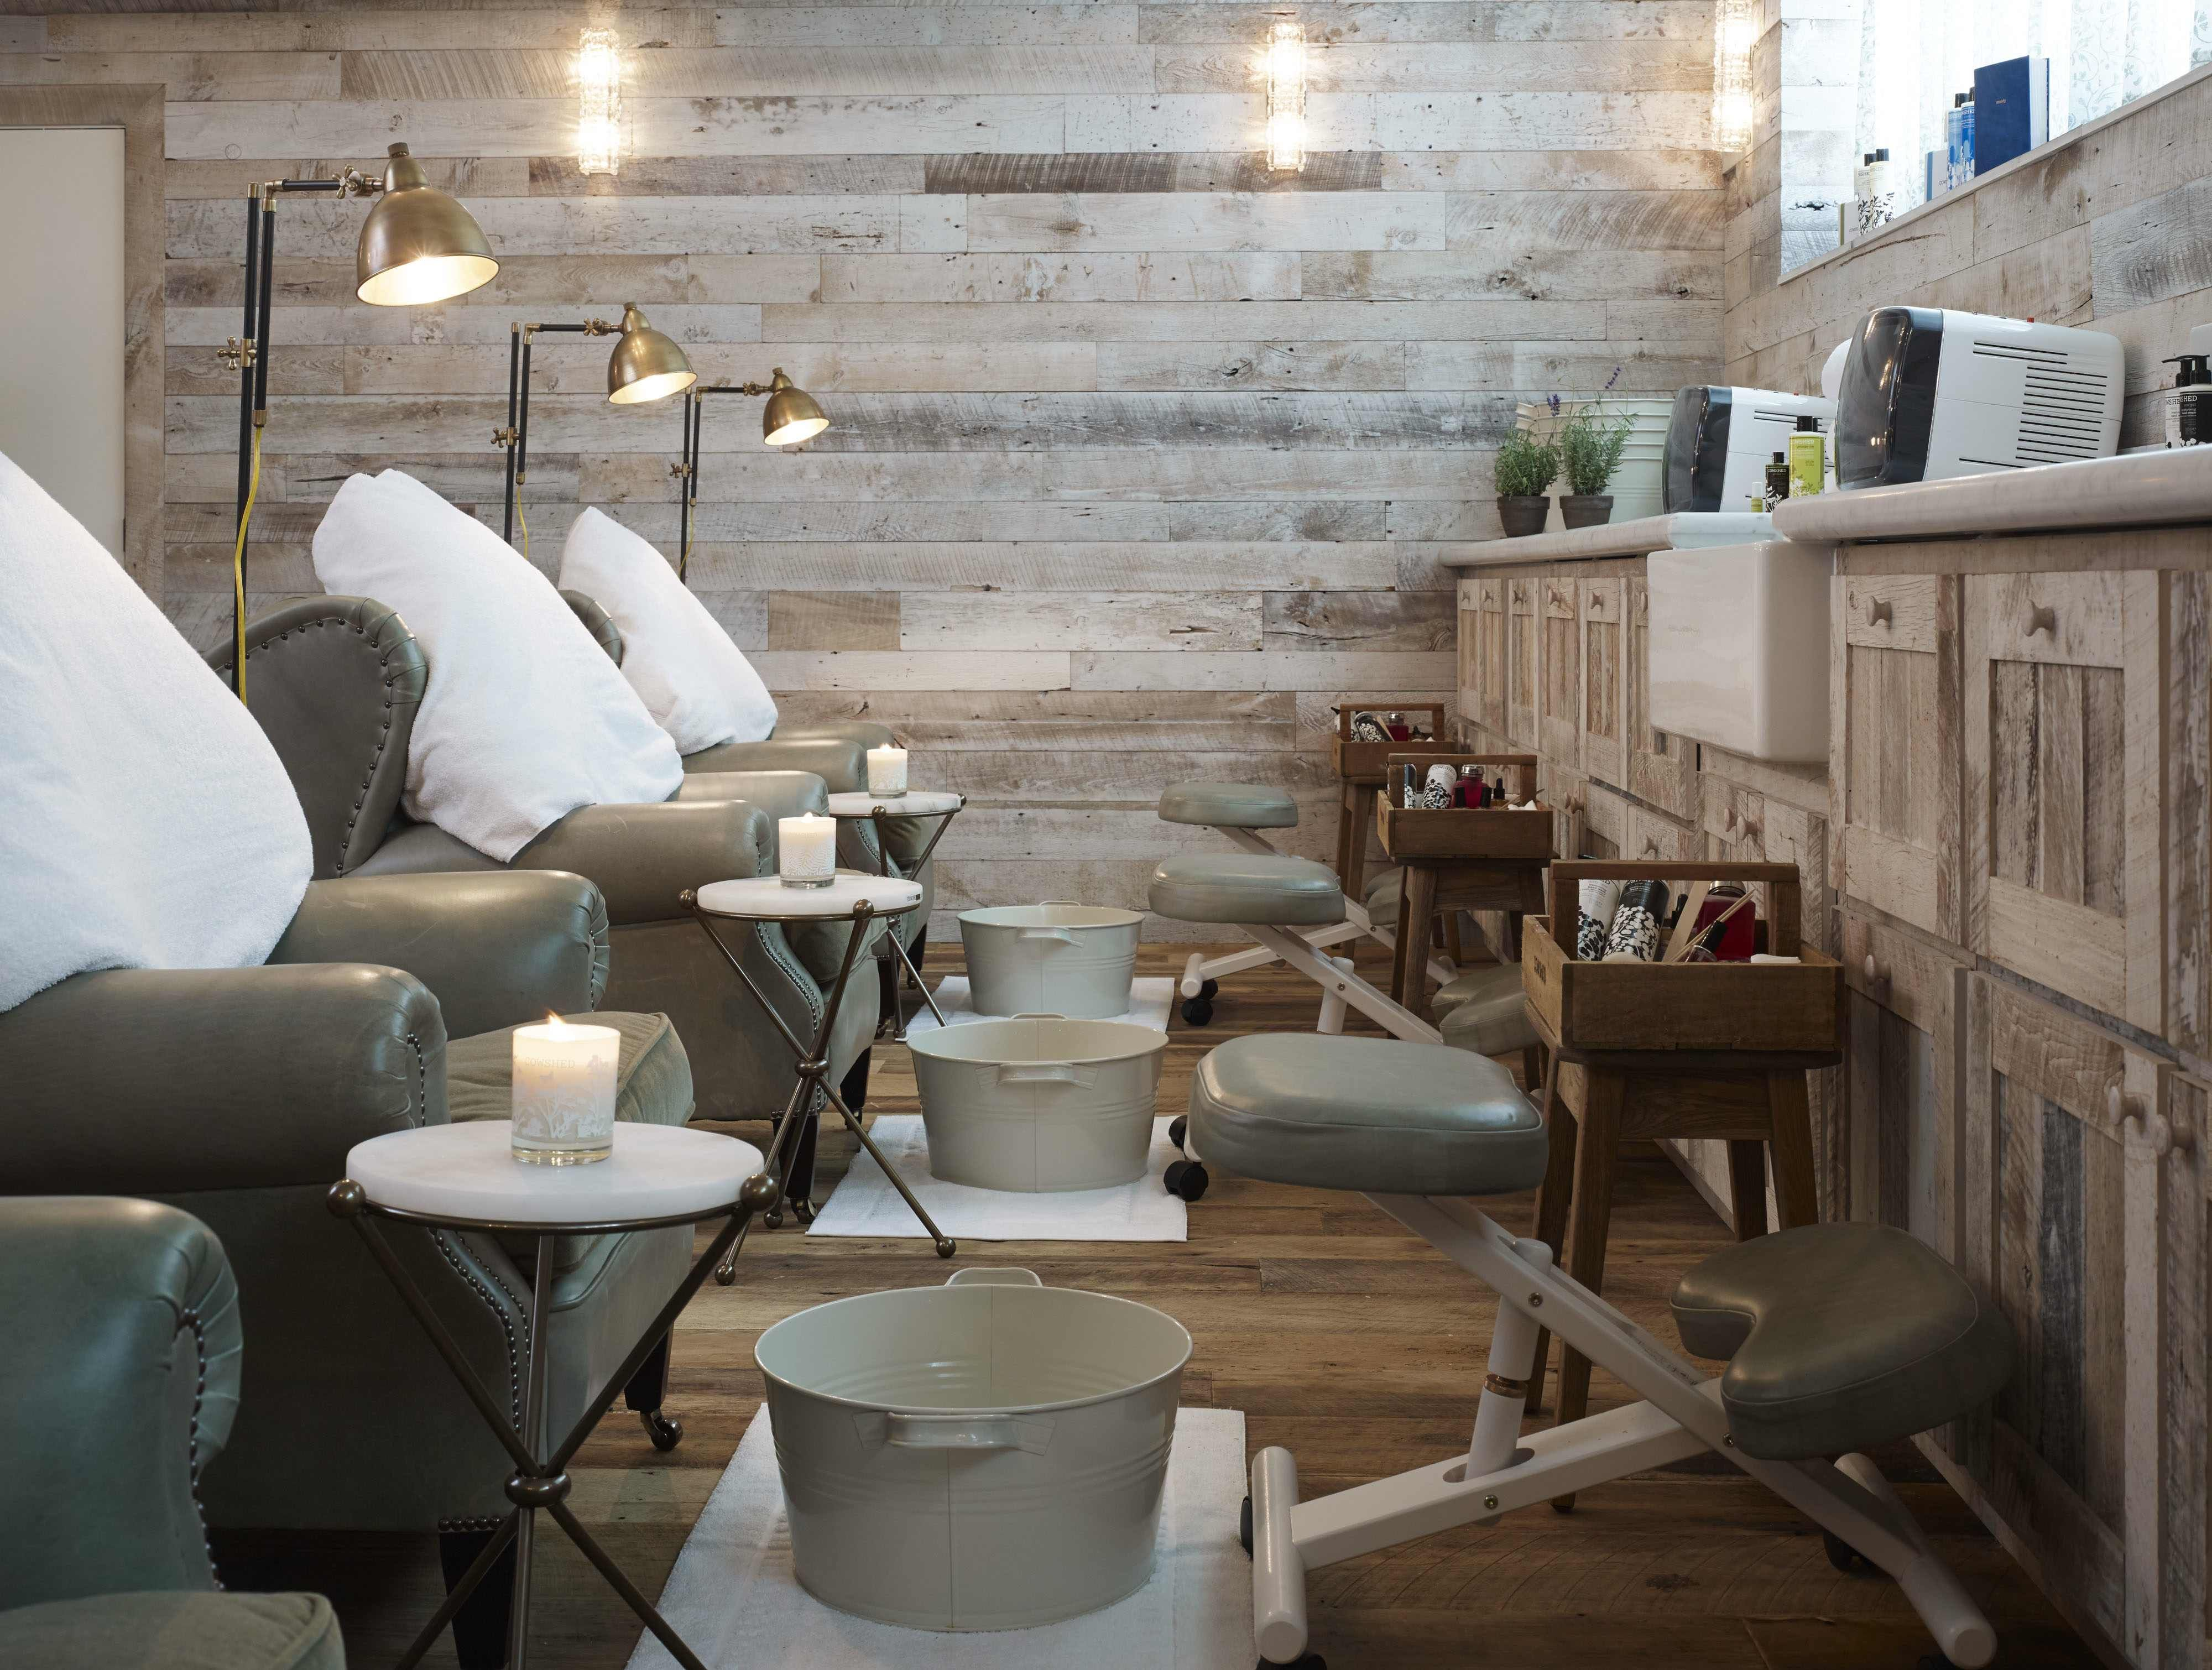 Cowshed Spa in Chicago has a cozy chic rustic interior - GO ...